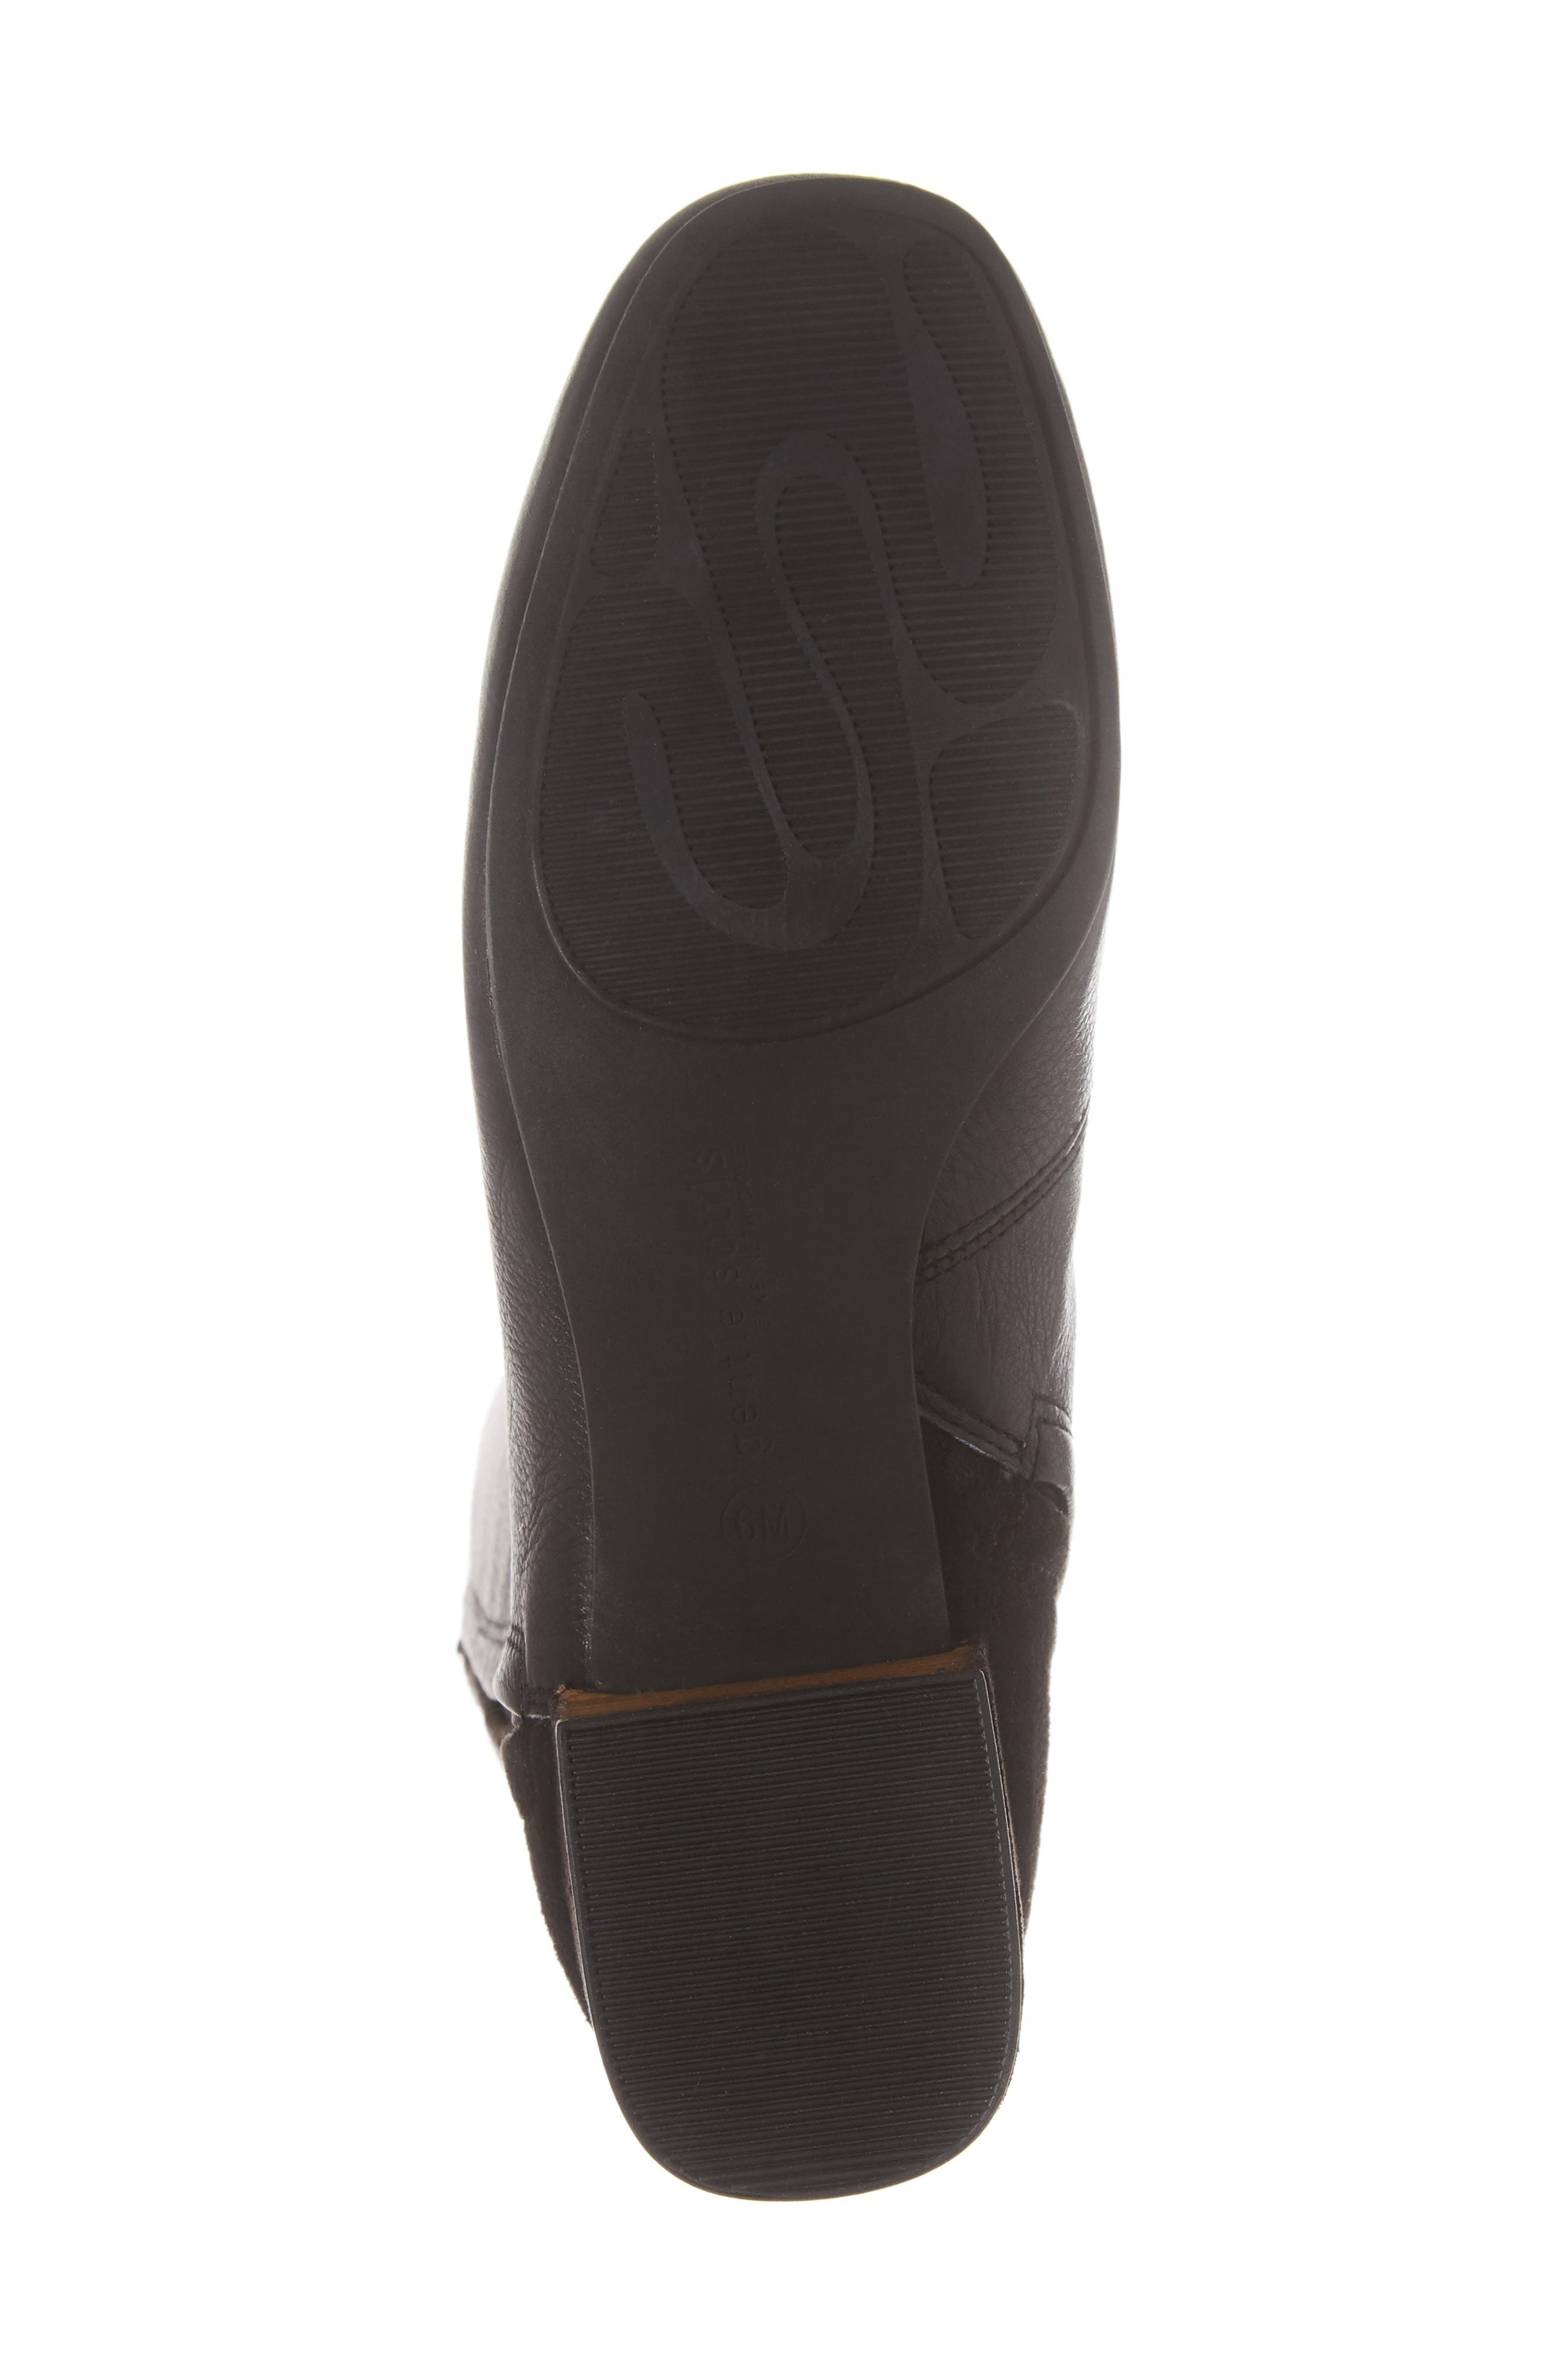 GENTLE SOULS BY KENNETH COLE,                             Ella-Seti Knee High Boot,                             Alternate thumbnail 6, color,                             001